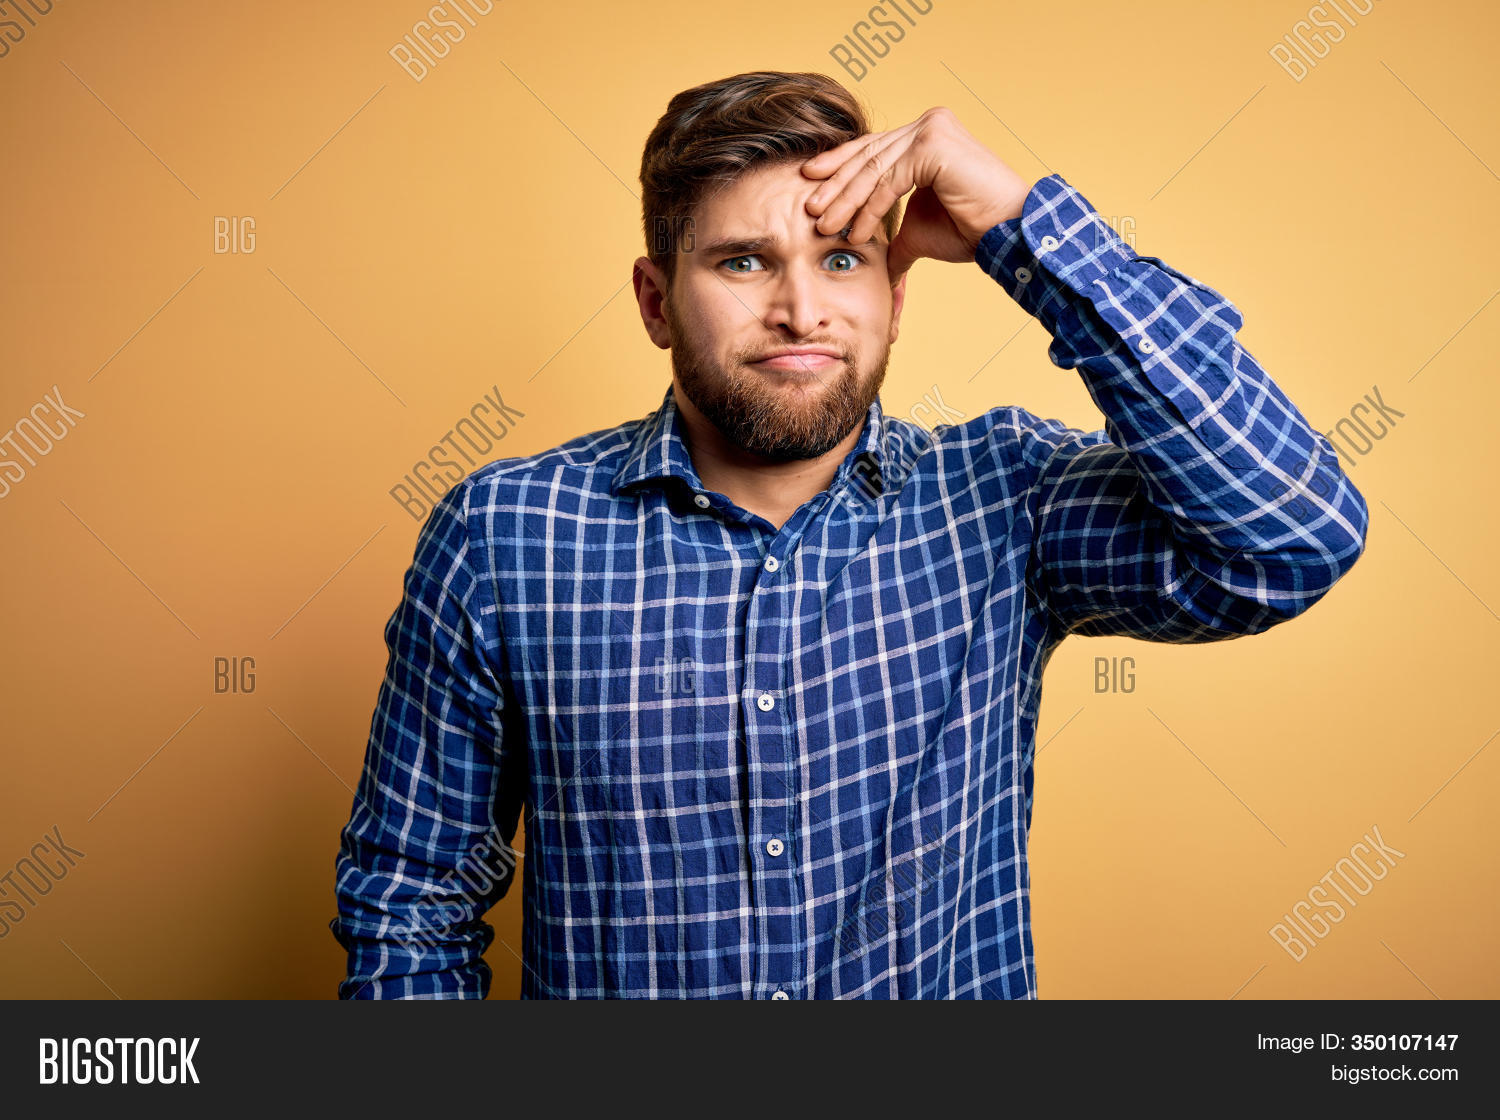 Young blond businessman with beard and blue eyes wearing shirt over yellow background worried and stressed about a problem with hand on forehead, nervous and anxious for crisis